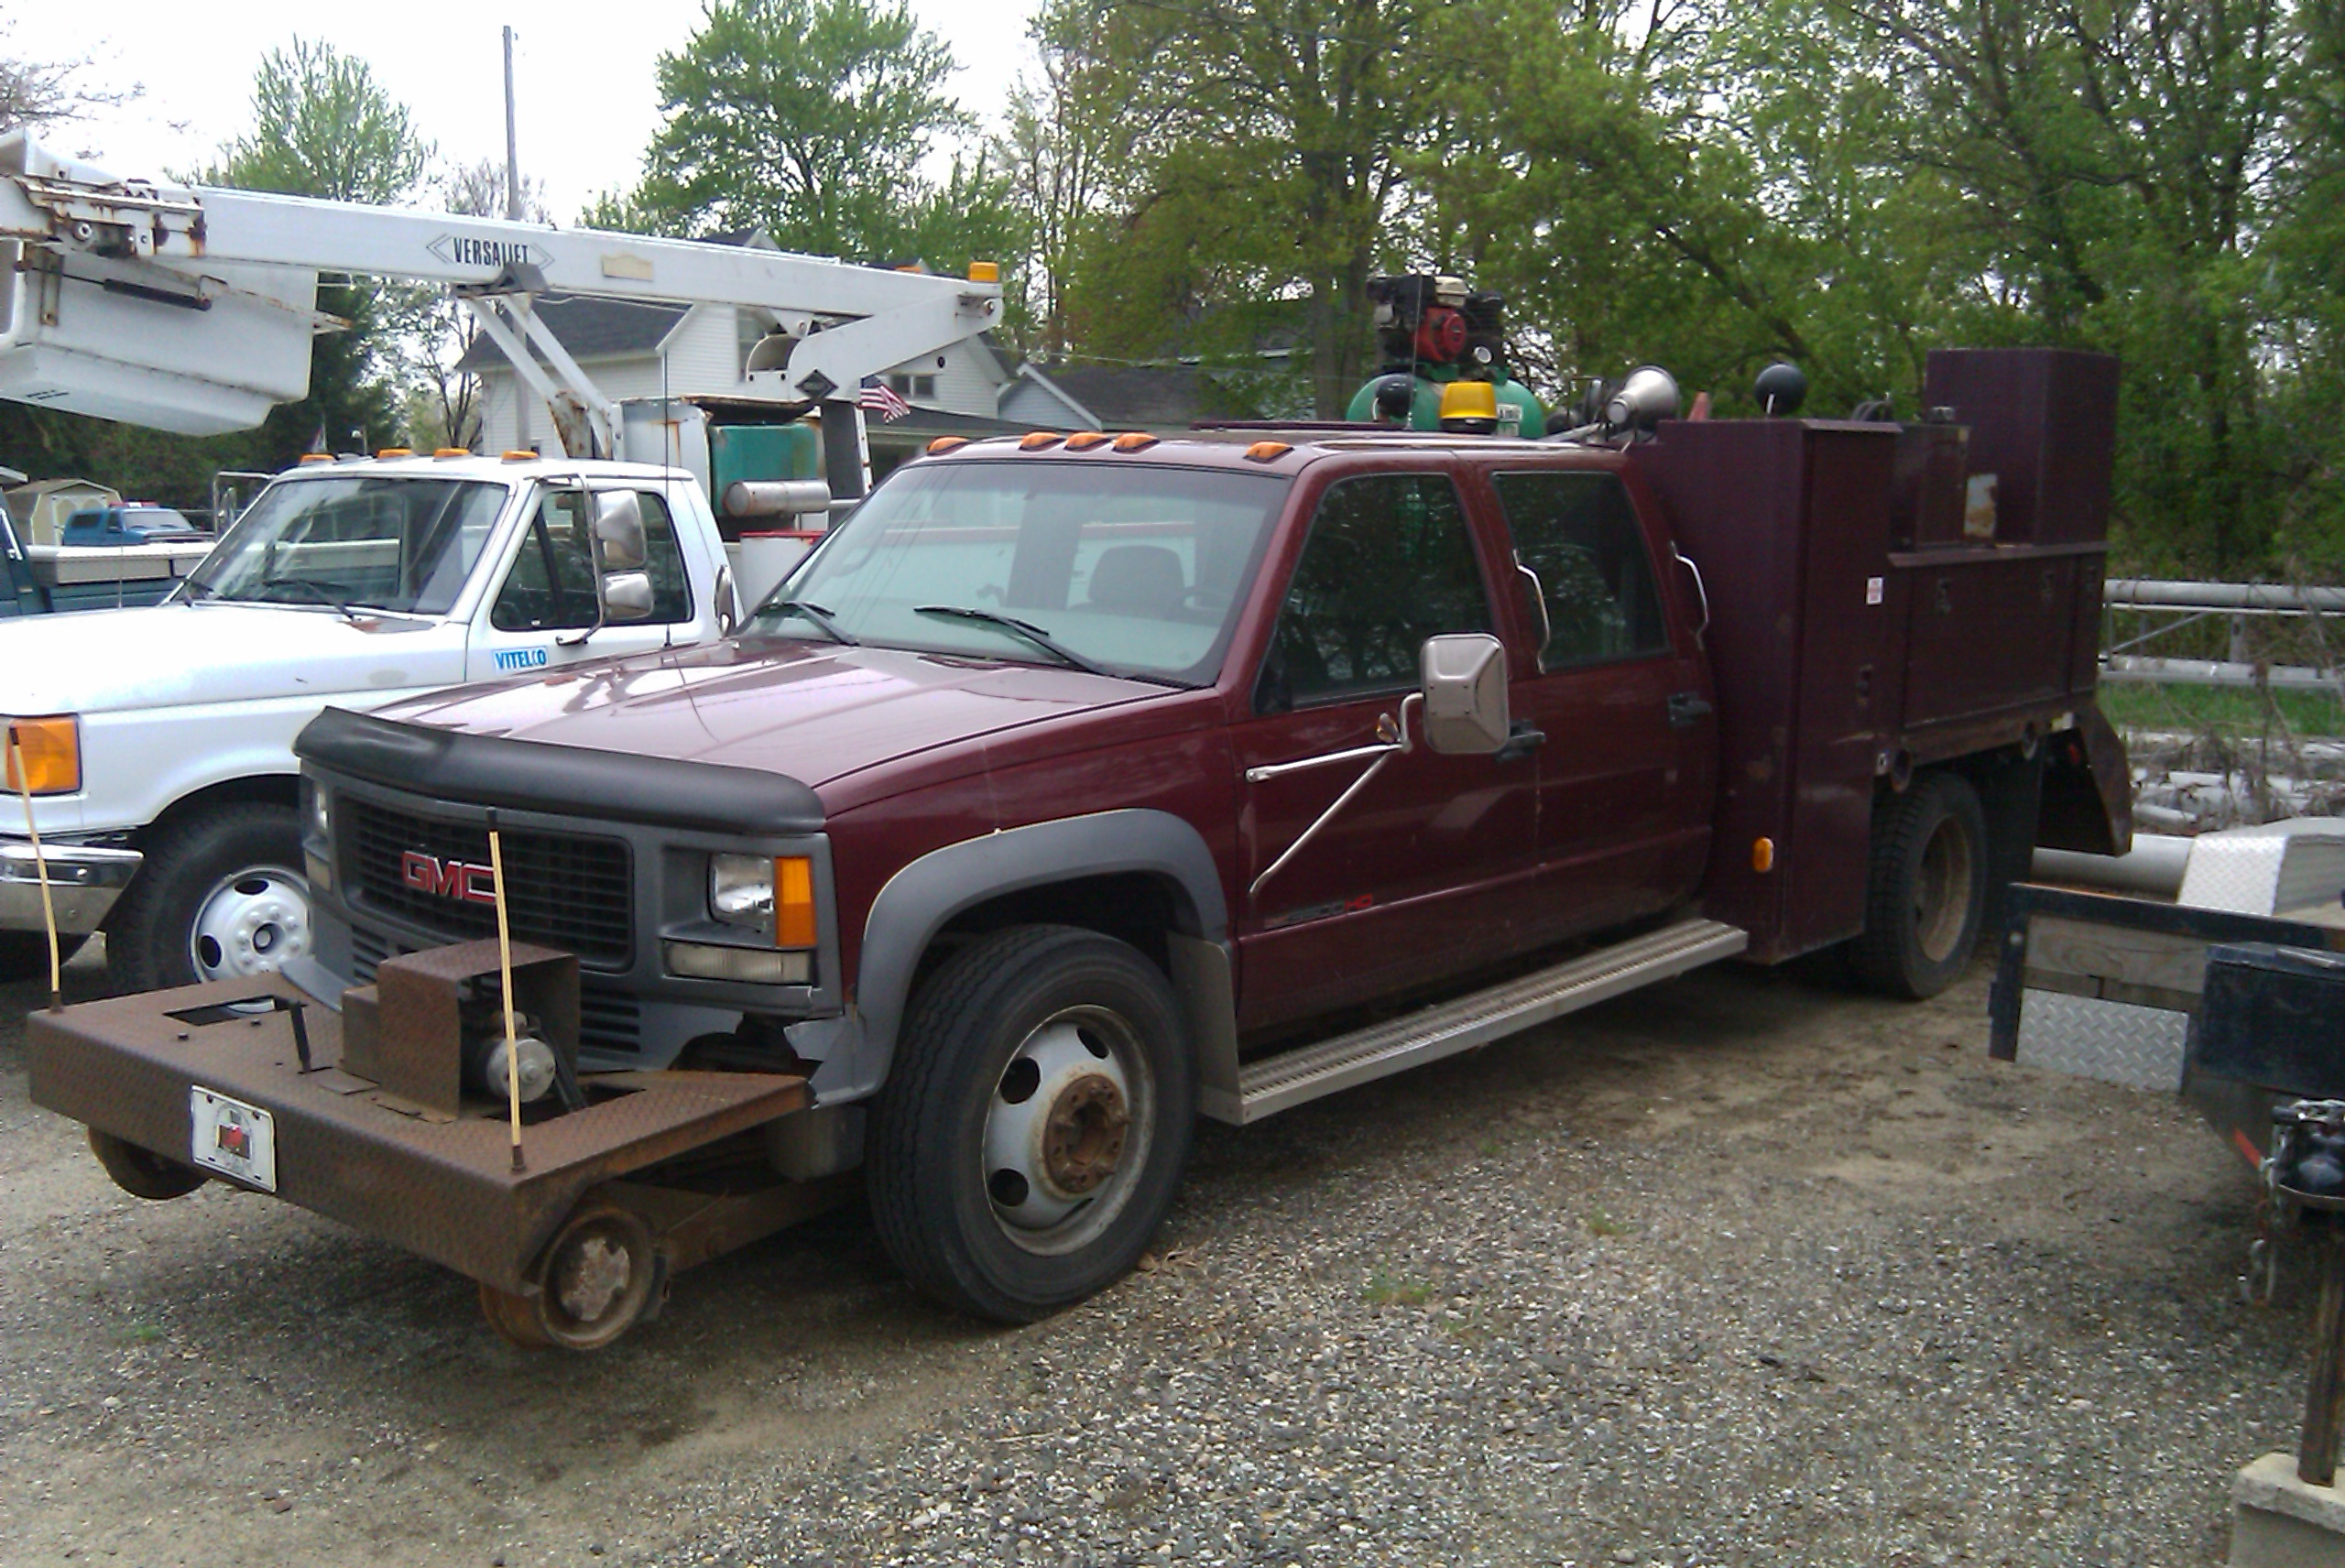 Campbell S Track Service Llc About Us